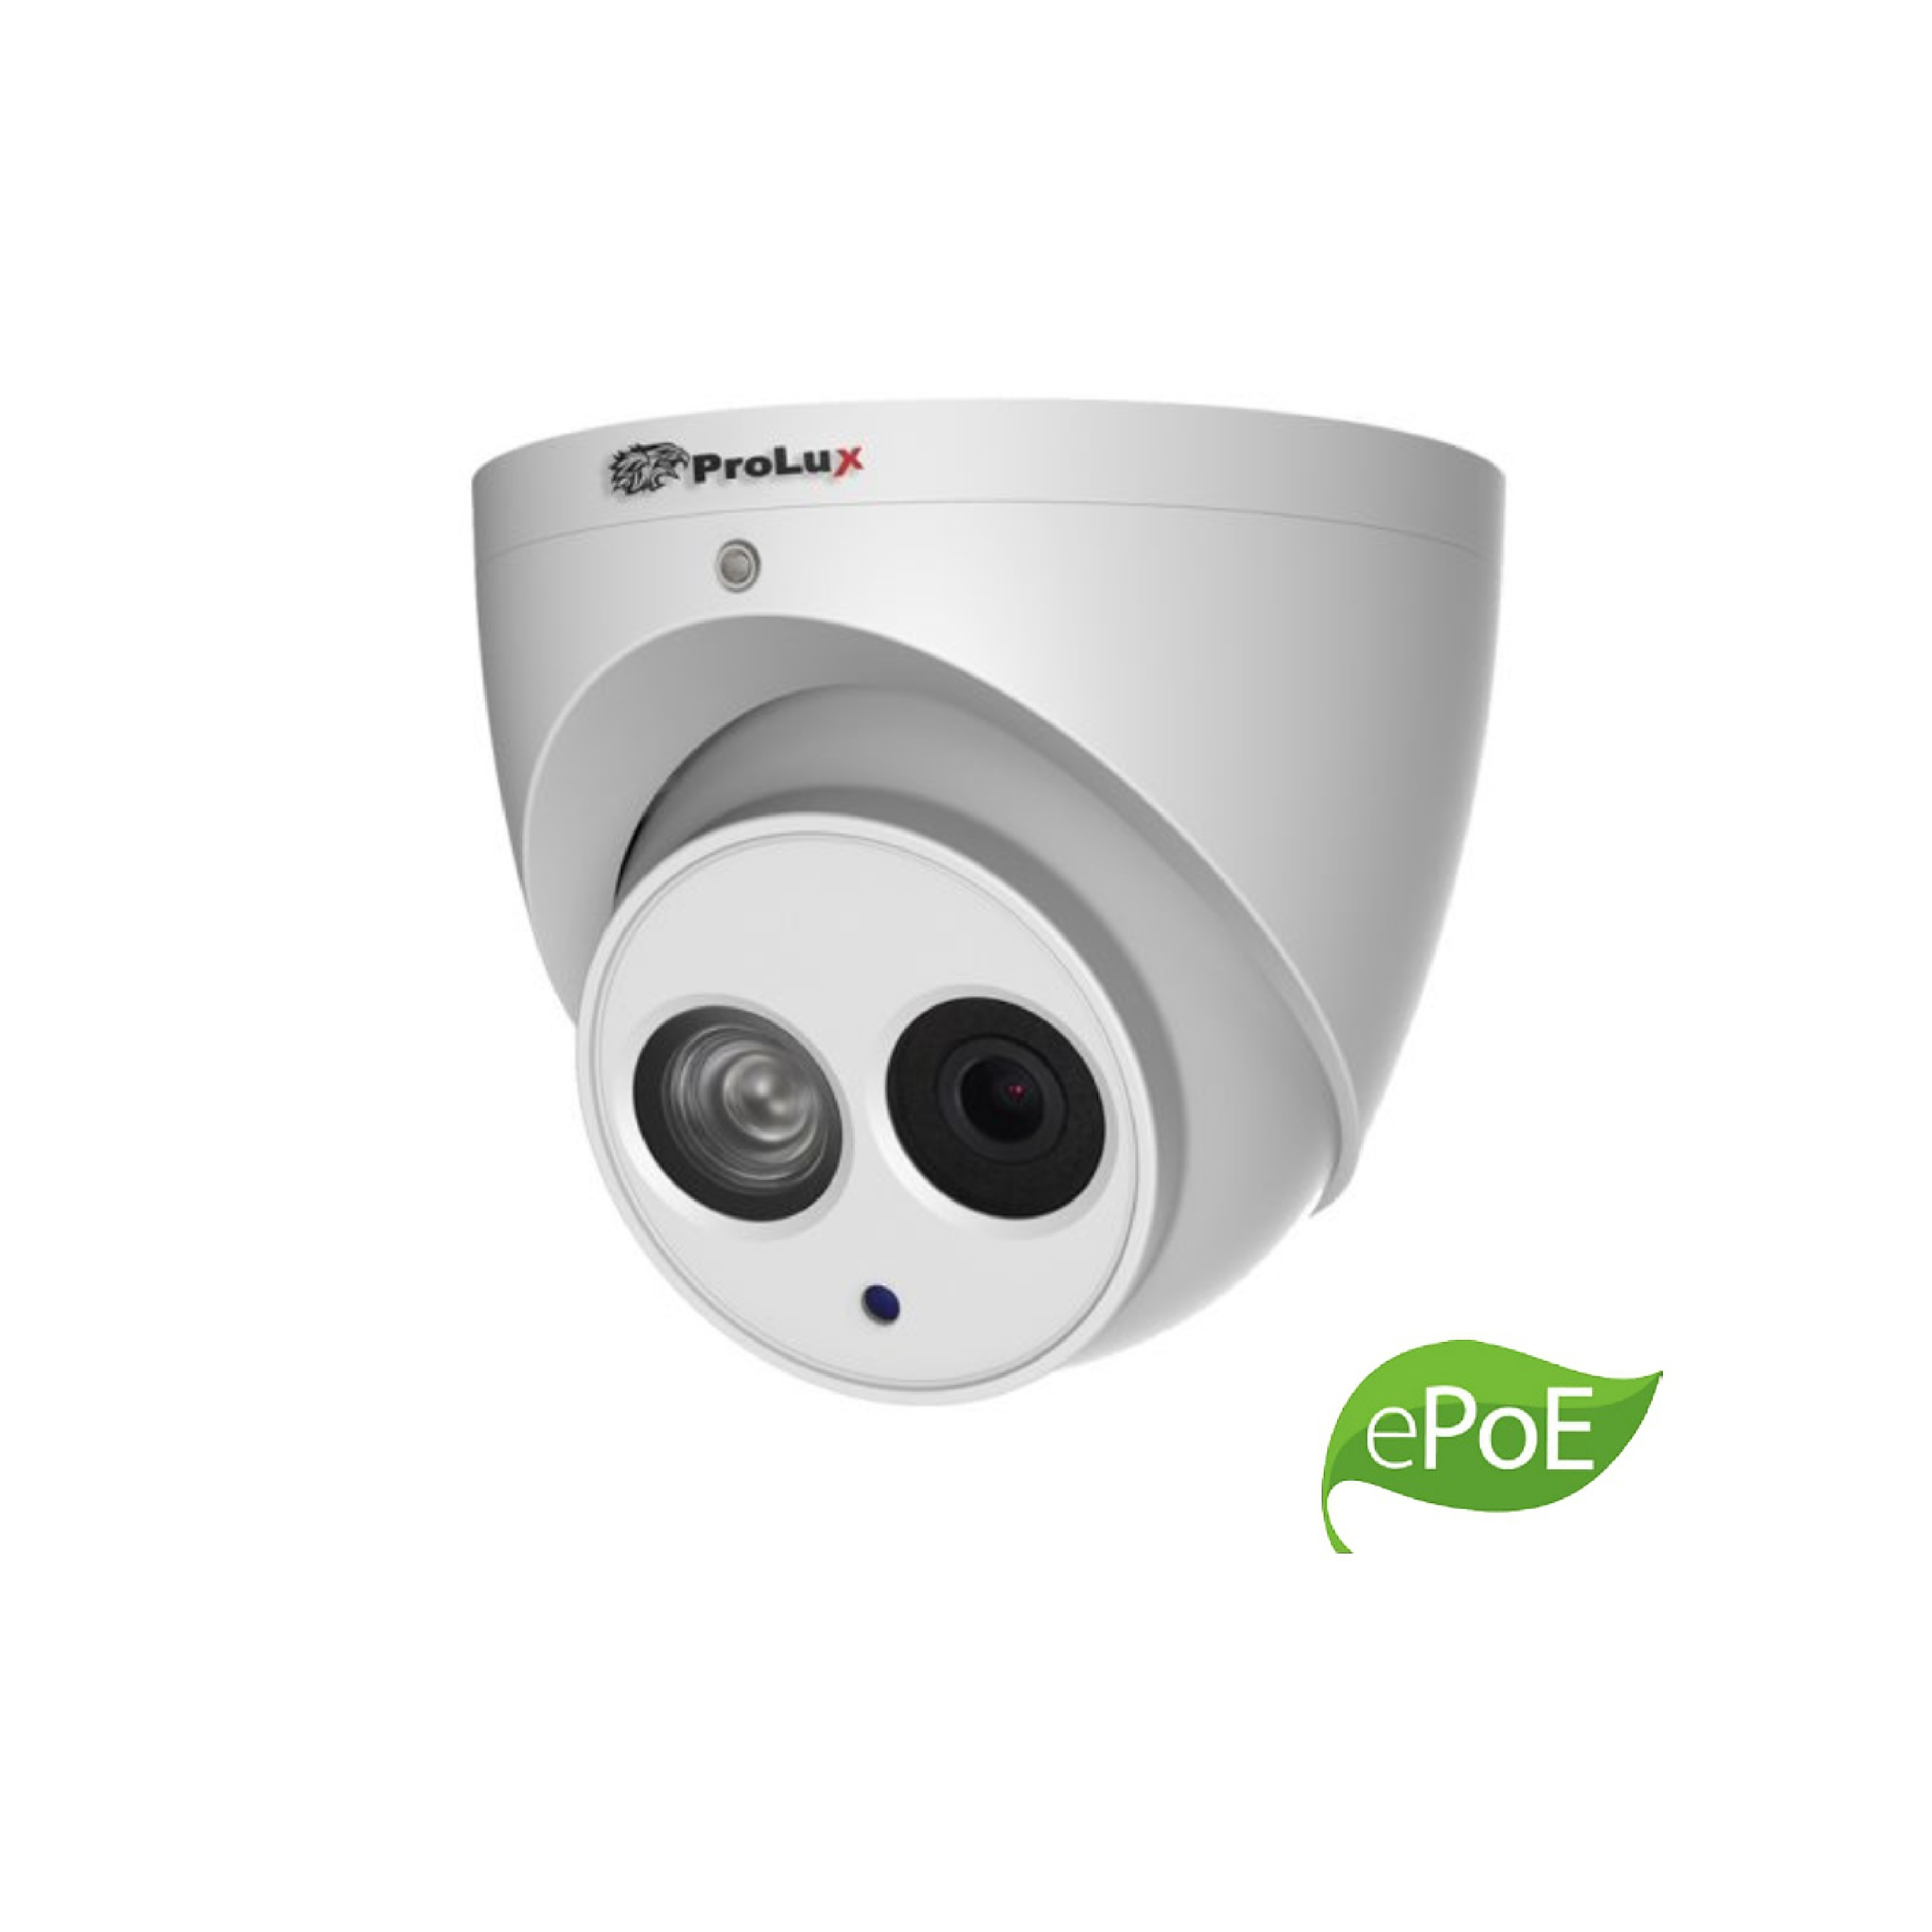 prolux-cctv-ip-camera-turret-6mp-fixed-lens-3-6mm-pxc-612i6w-ep